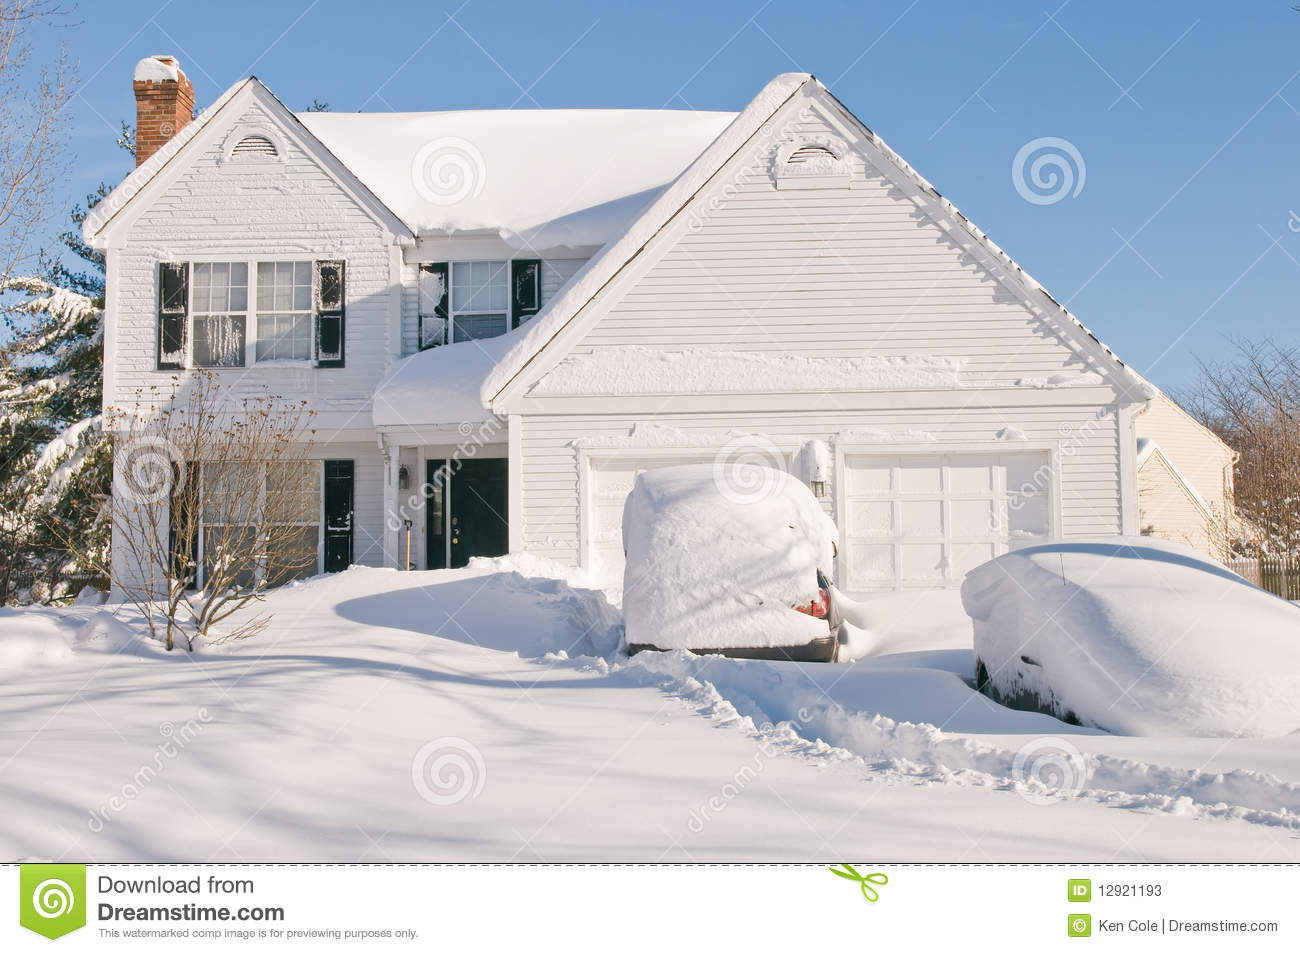 House and cars after snowstorm